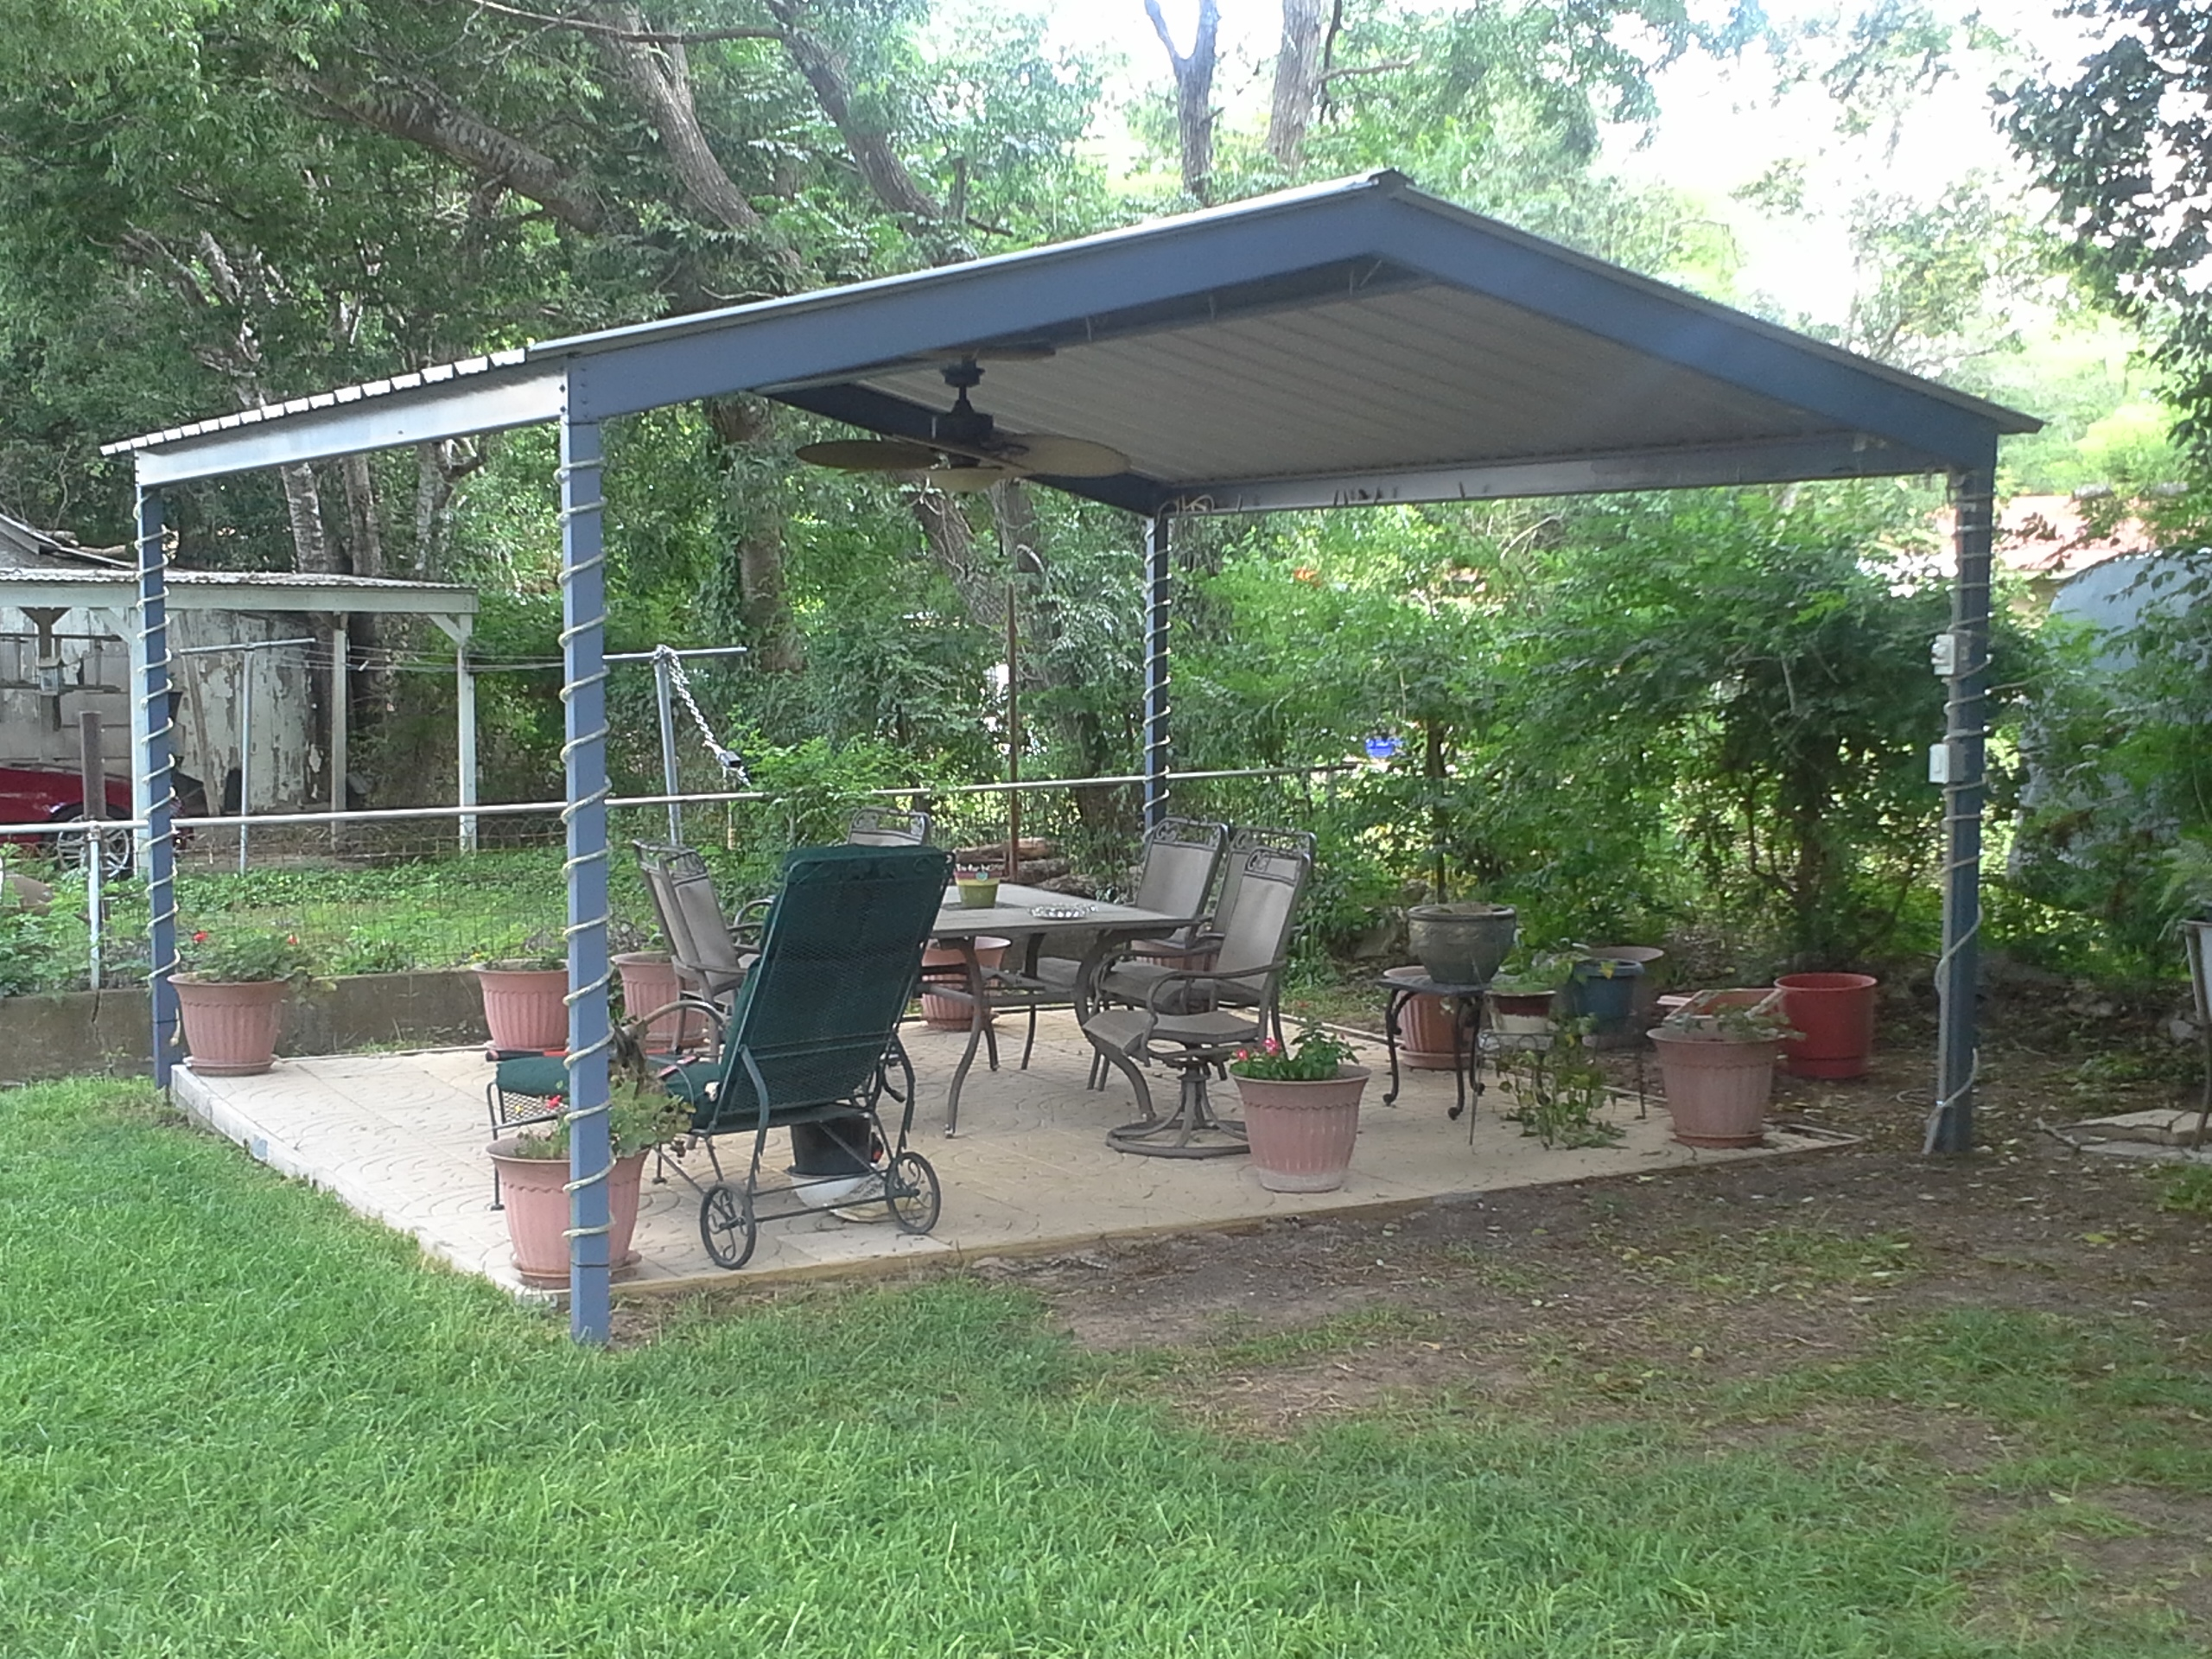 Backyard Patio Covers: From Usefulness To Style - HomesFeed on Backyard Patio Cover Ideas  id=62036